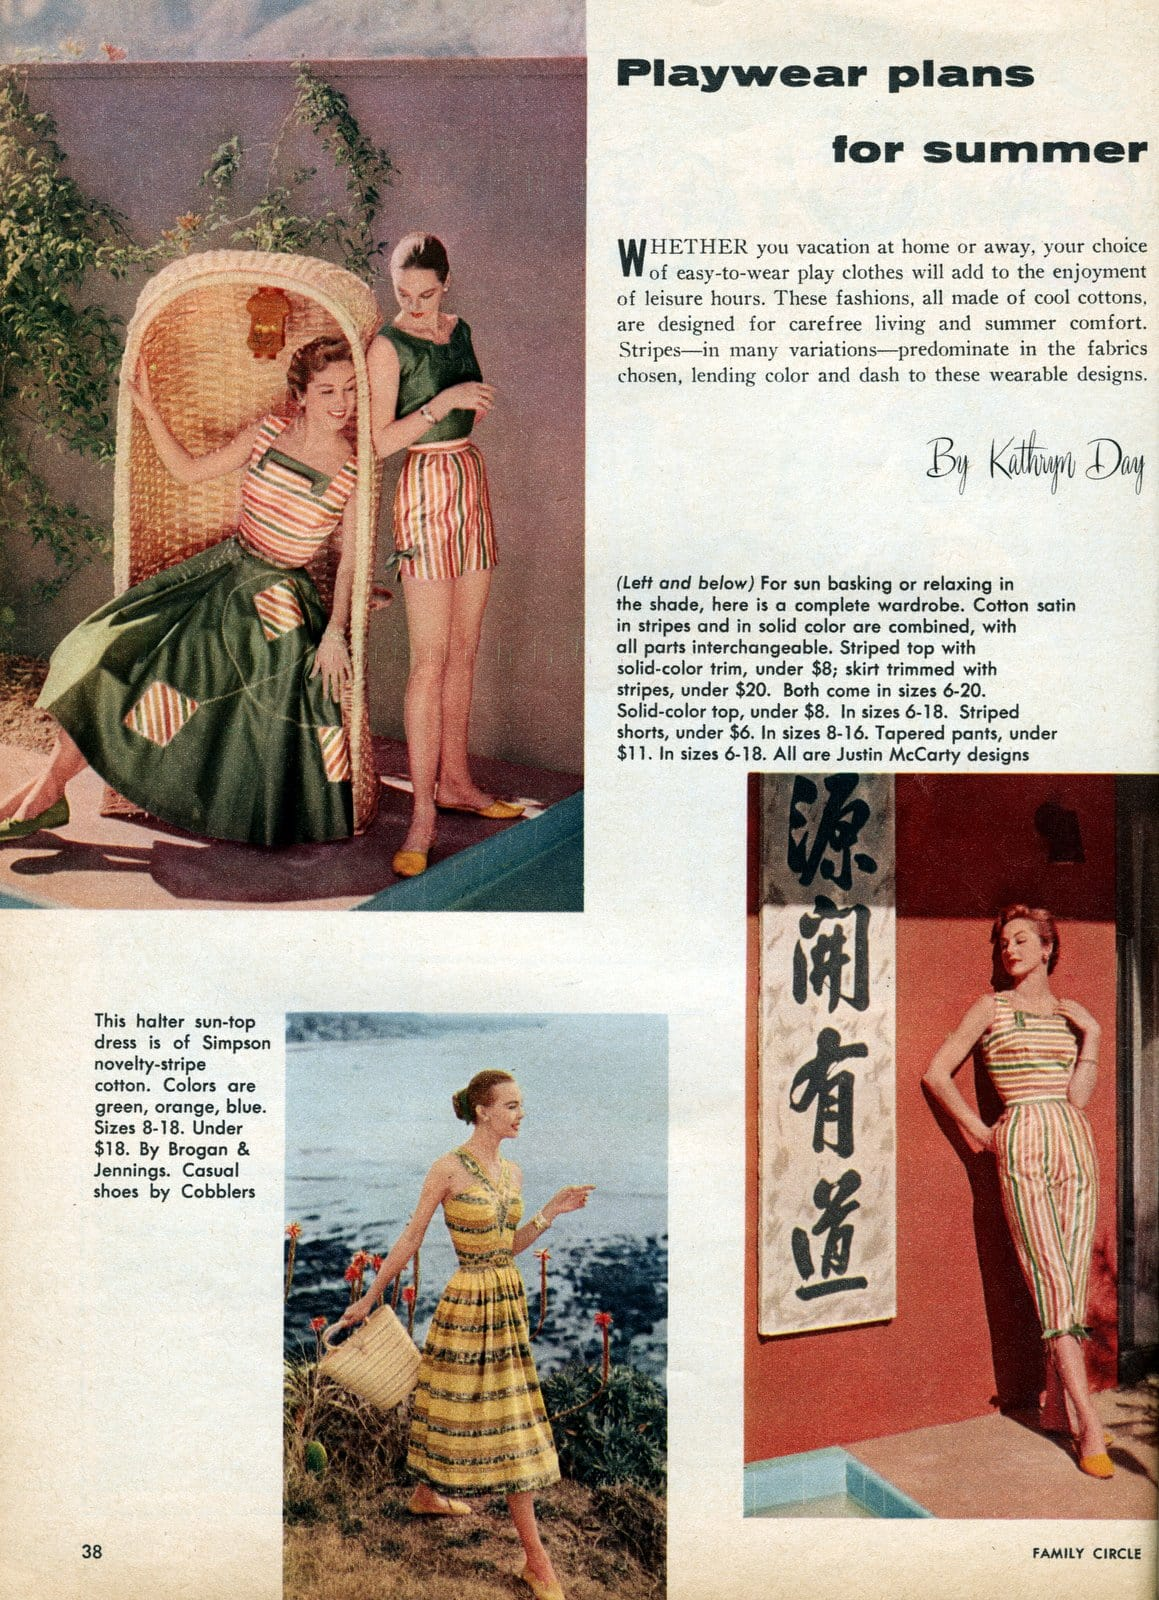 Vintage playwear - summer fashhions for women from the 1950s (2)